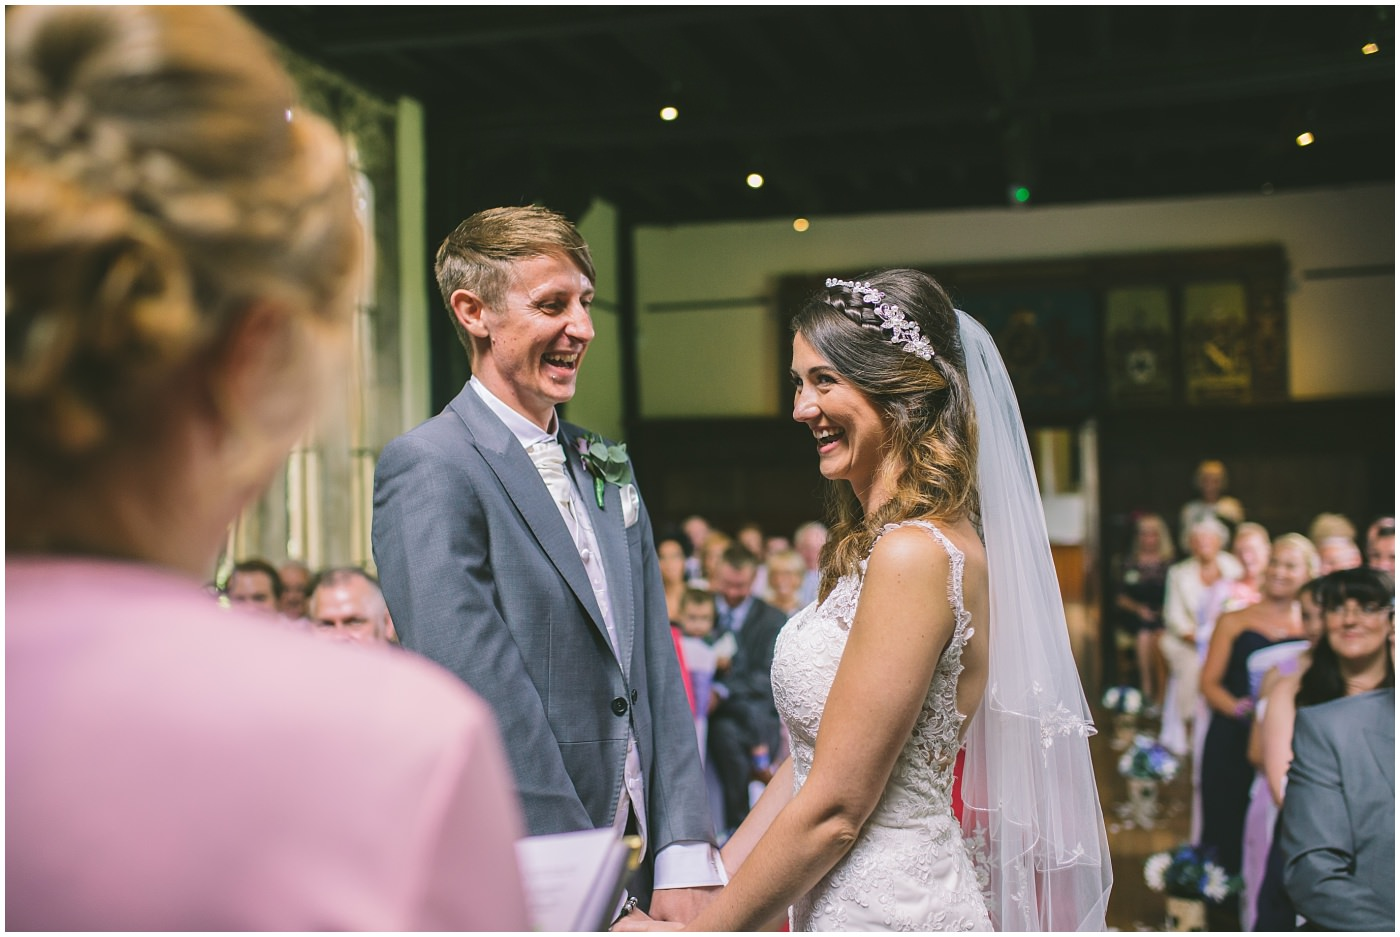 Happy couple are all smiles in their wedding ceremony